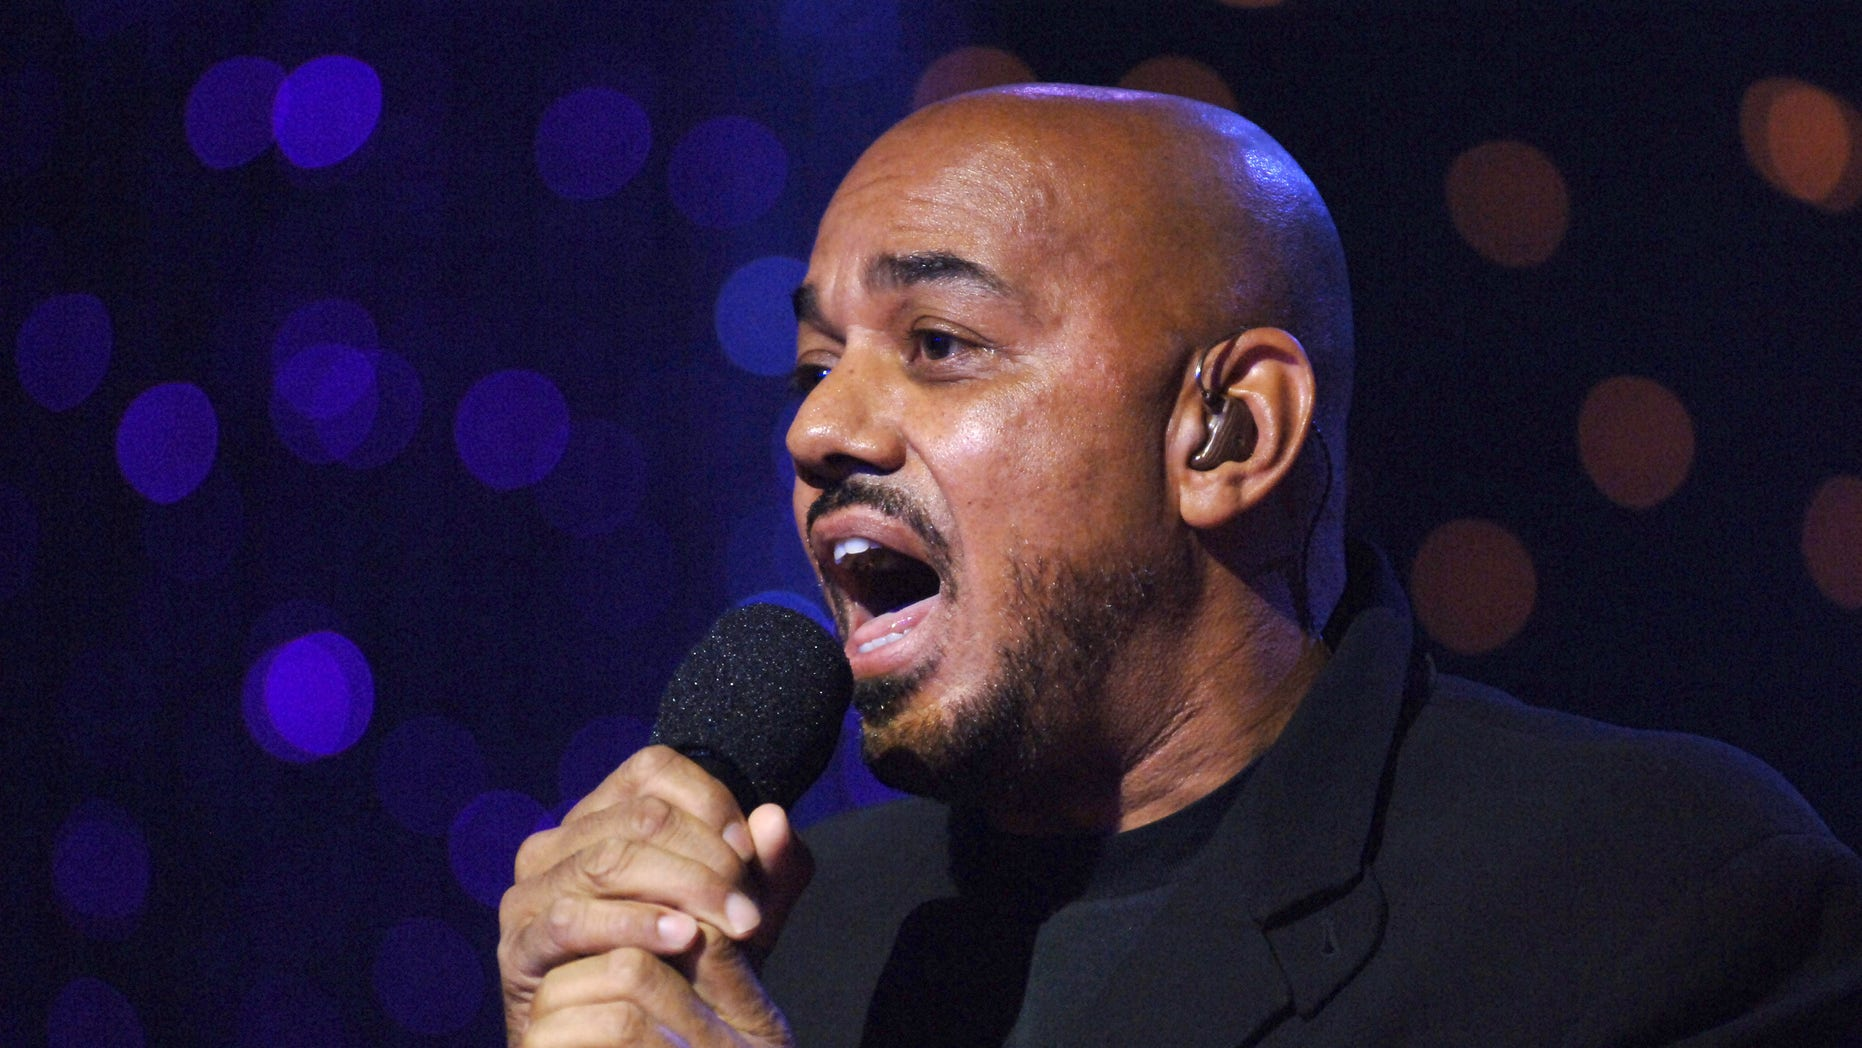 R&B singer, songwriter and producer James Ingram died Tuesday, January 29, 2019 and his long-standing friend Debbie Allen confirmed on Twitter.